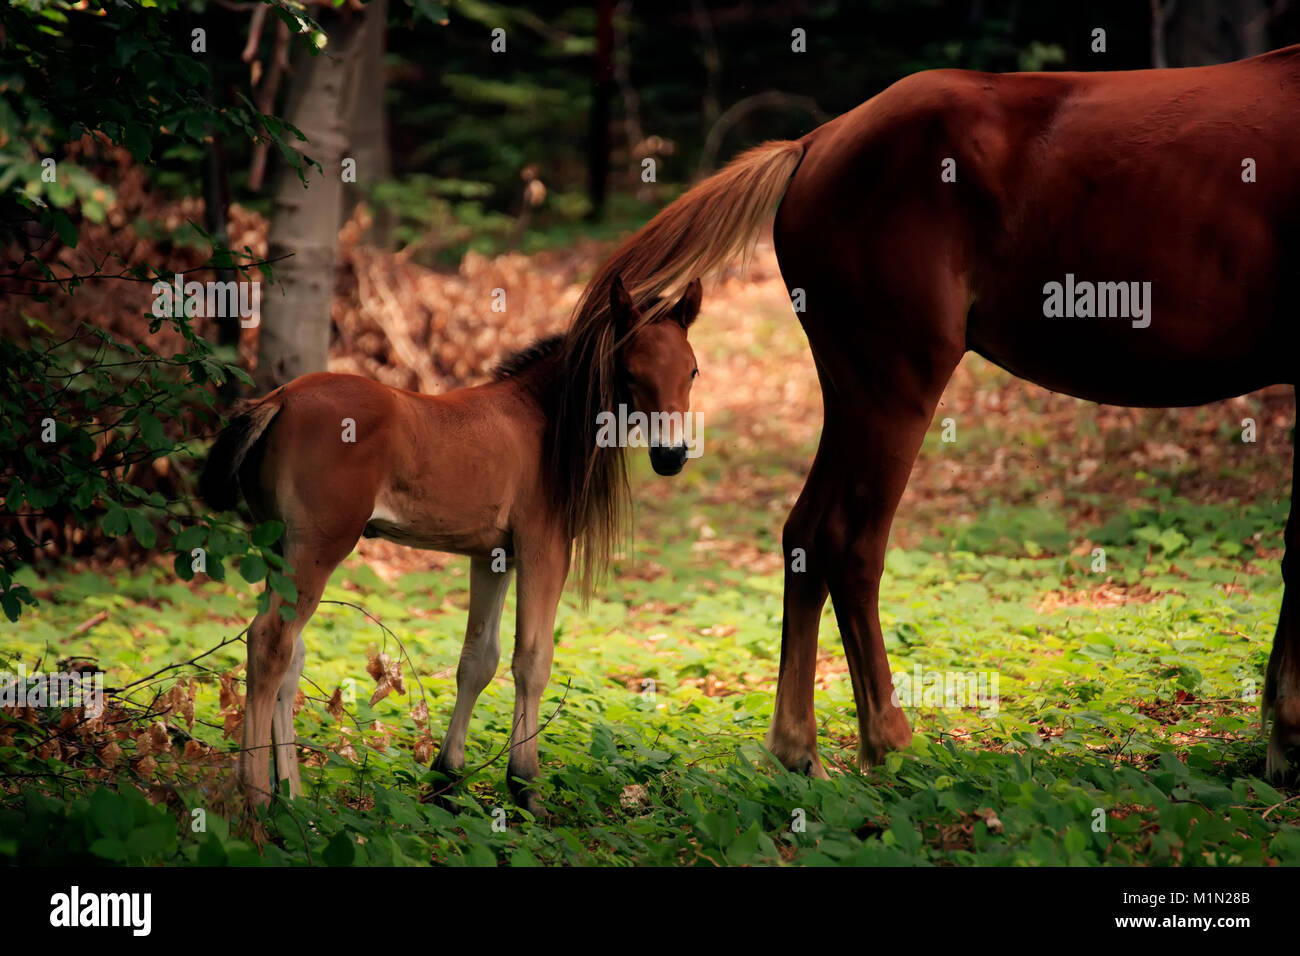 Baby Horse And His Mother In Sunny Forest Stock Photo Alamy